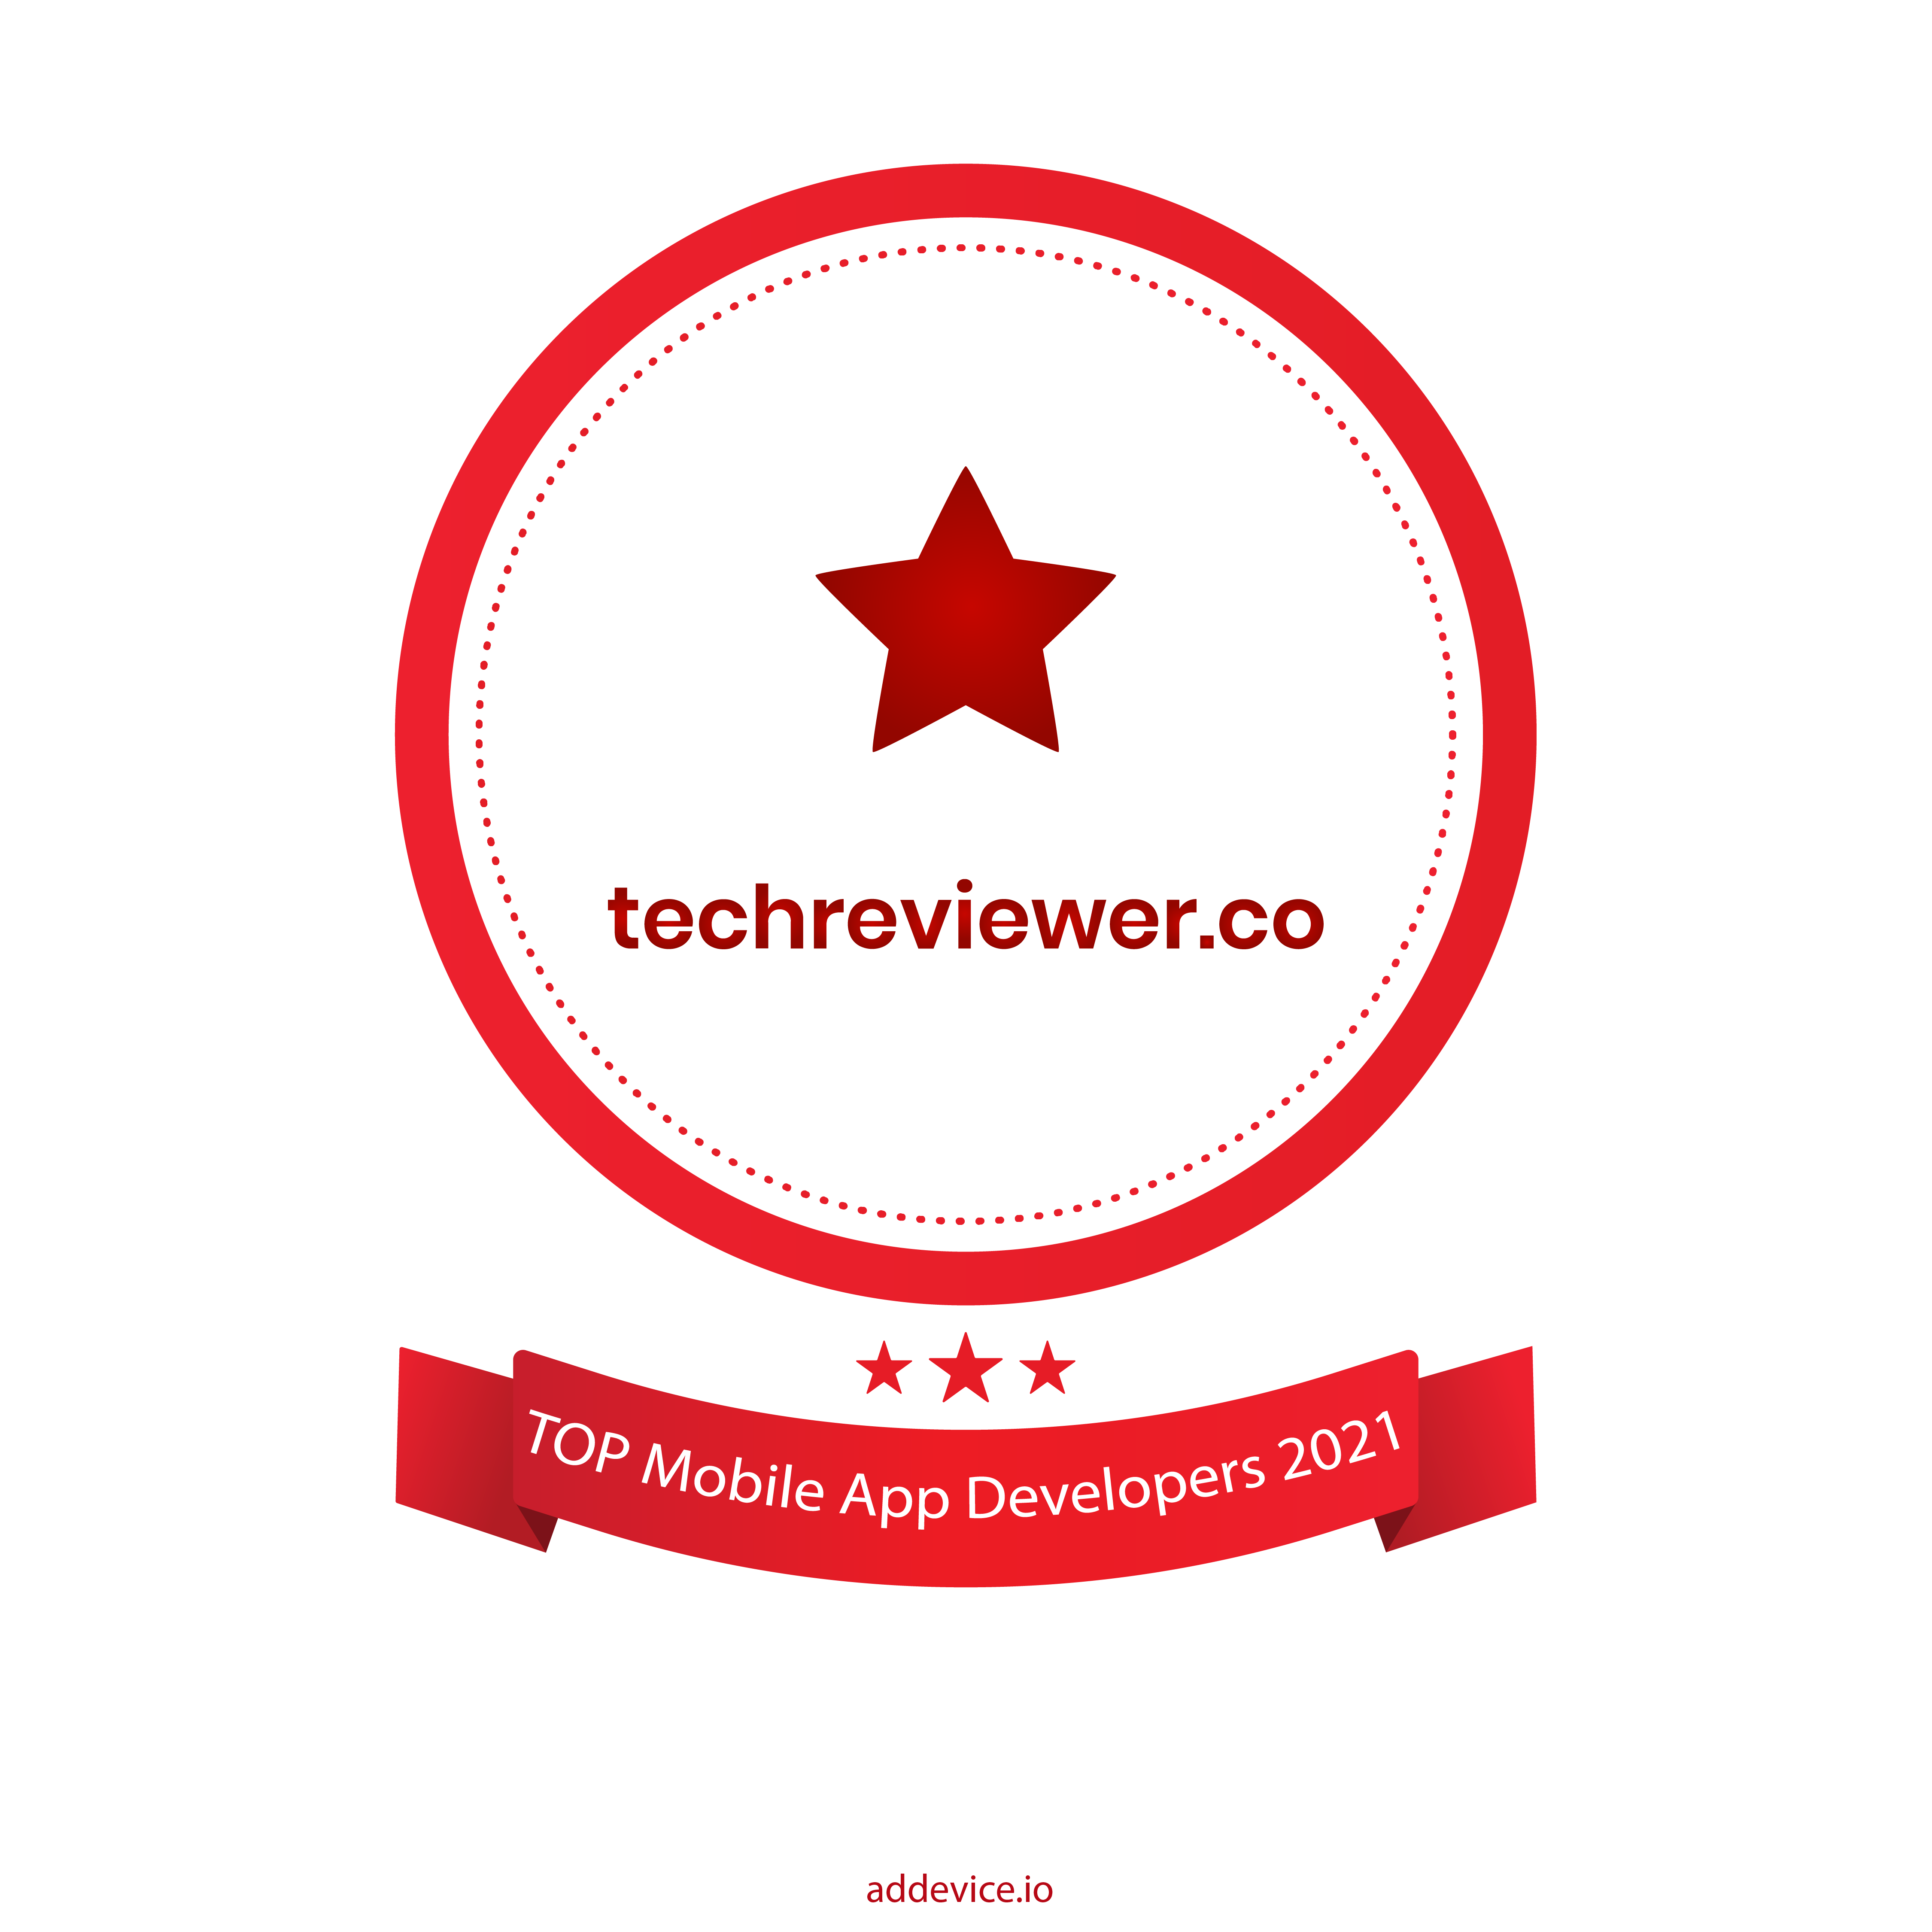 Let's build on great achievements Addevice in 2021